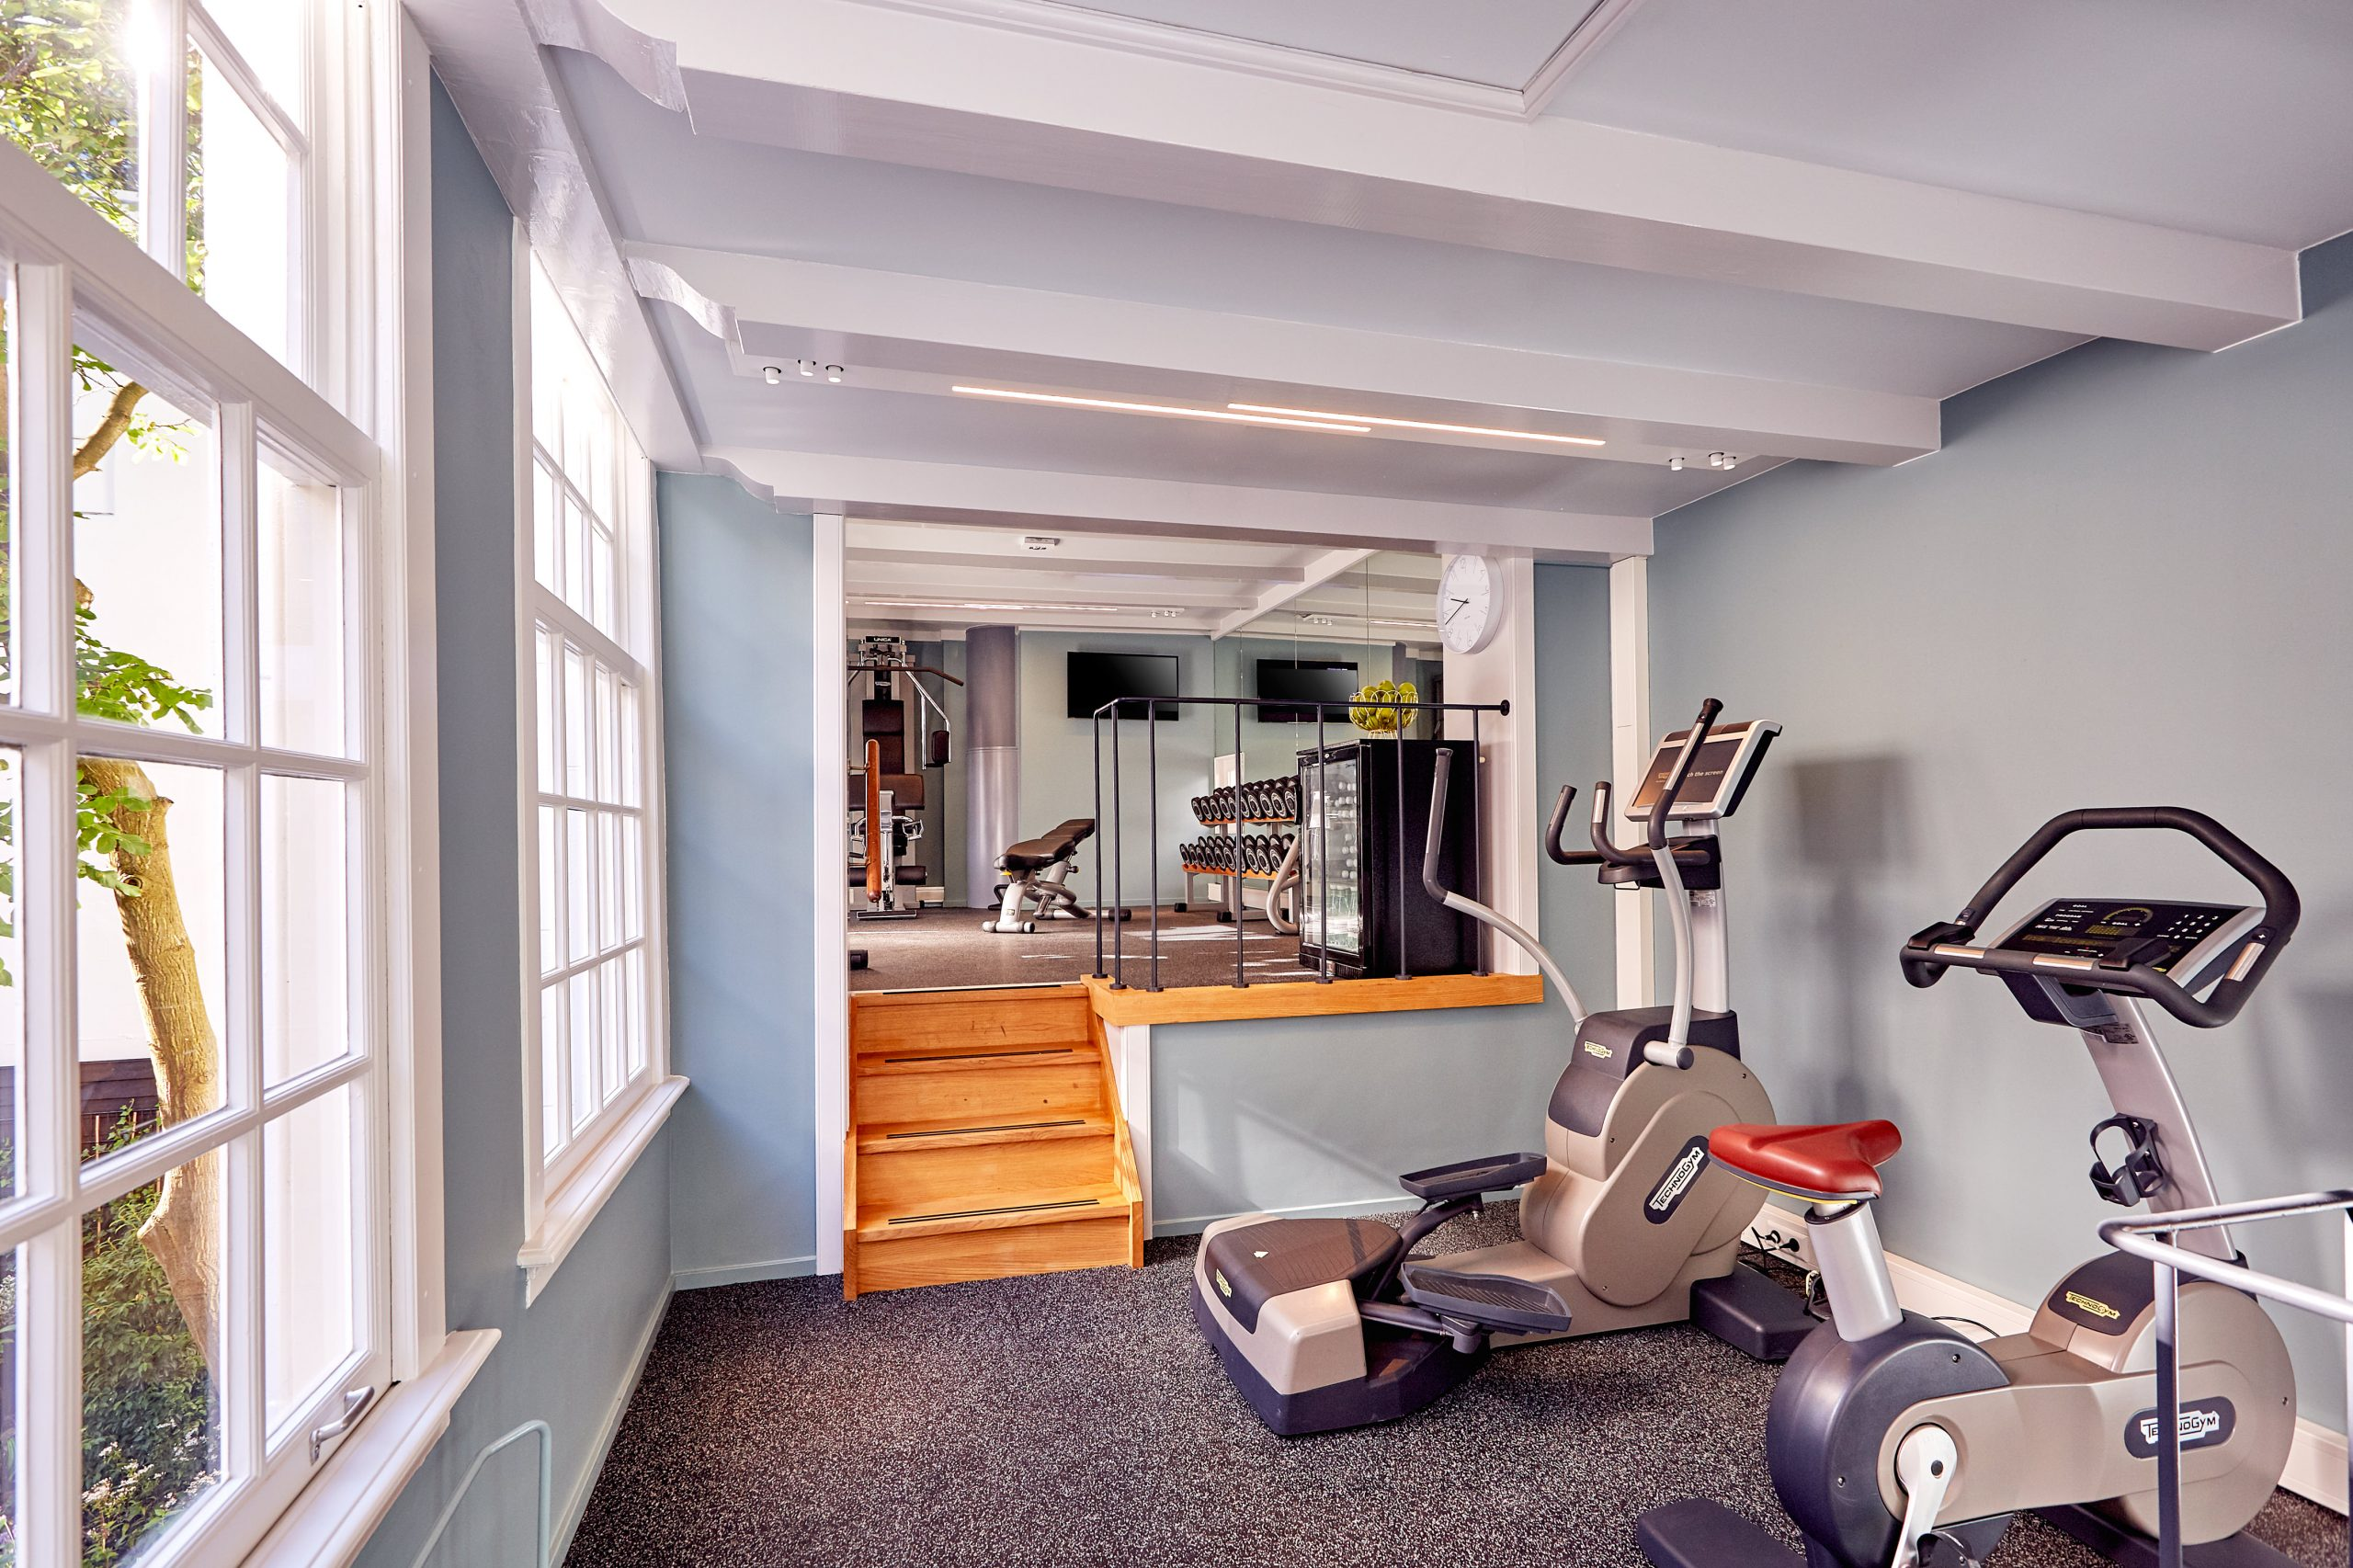 Gym - Upstairs